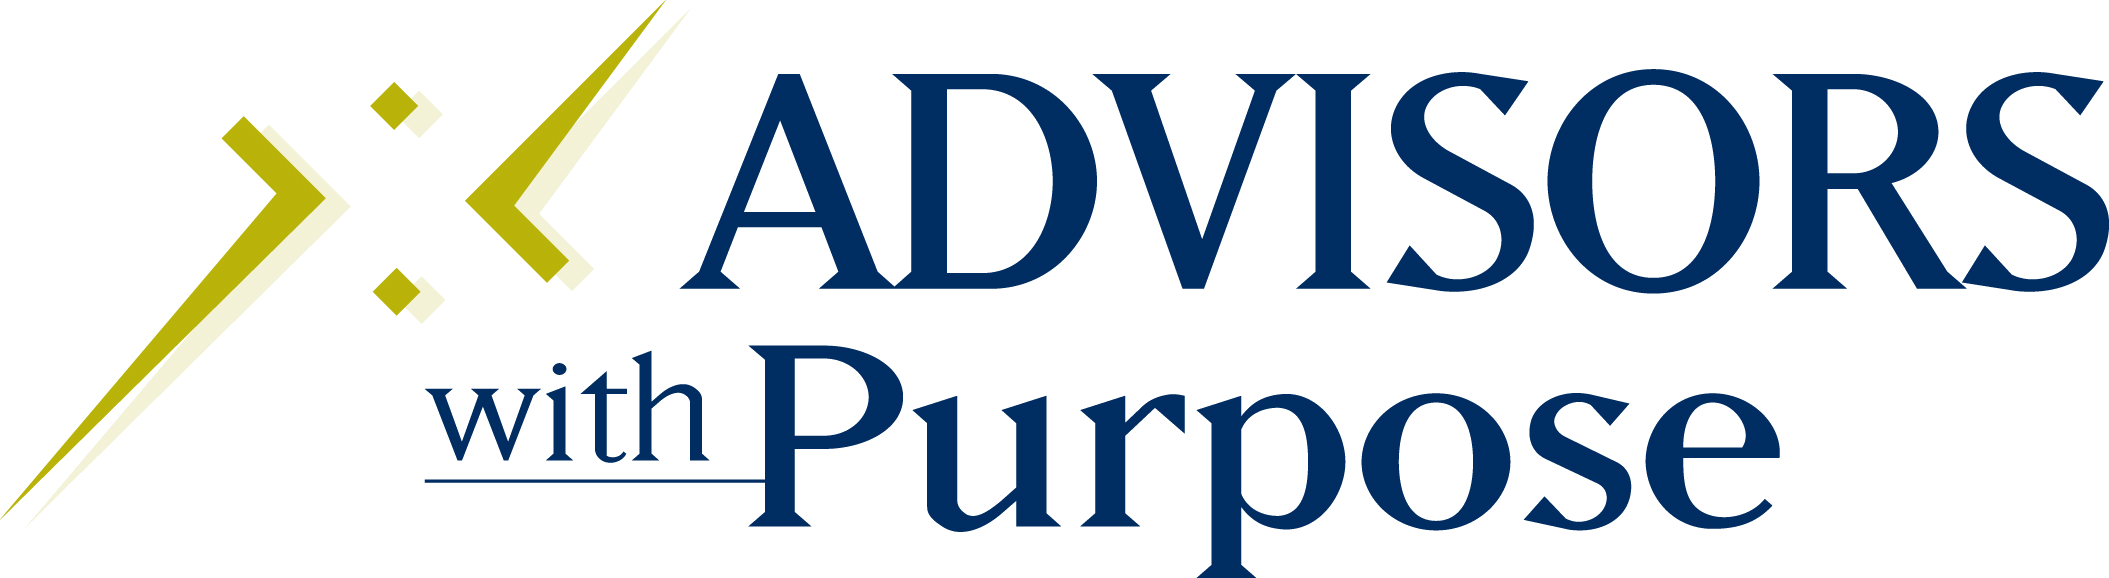 advisors with purpose legacy giving